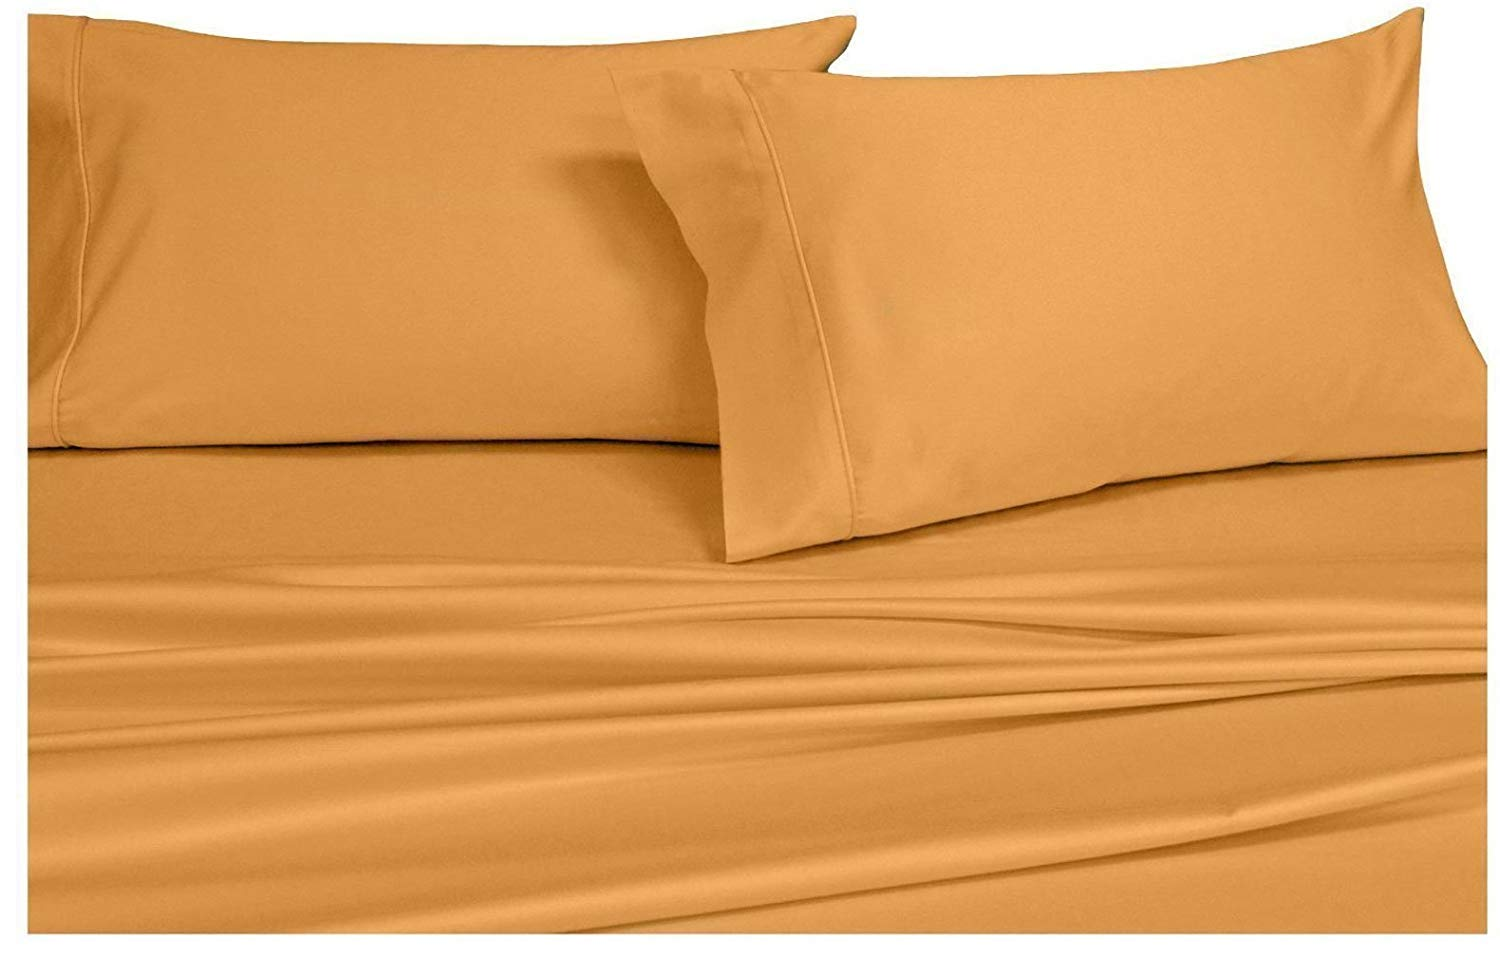 Solid gold California King Royal's Solid Sea 1000 Thread Count 4pc Top-Split-King  Adjustable Top Split King Size Bed Sheet Set 100% Cotton, Sateen Solid, Deep Pocket